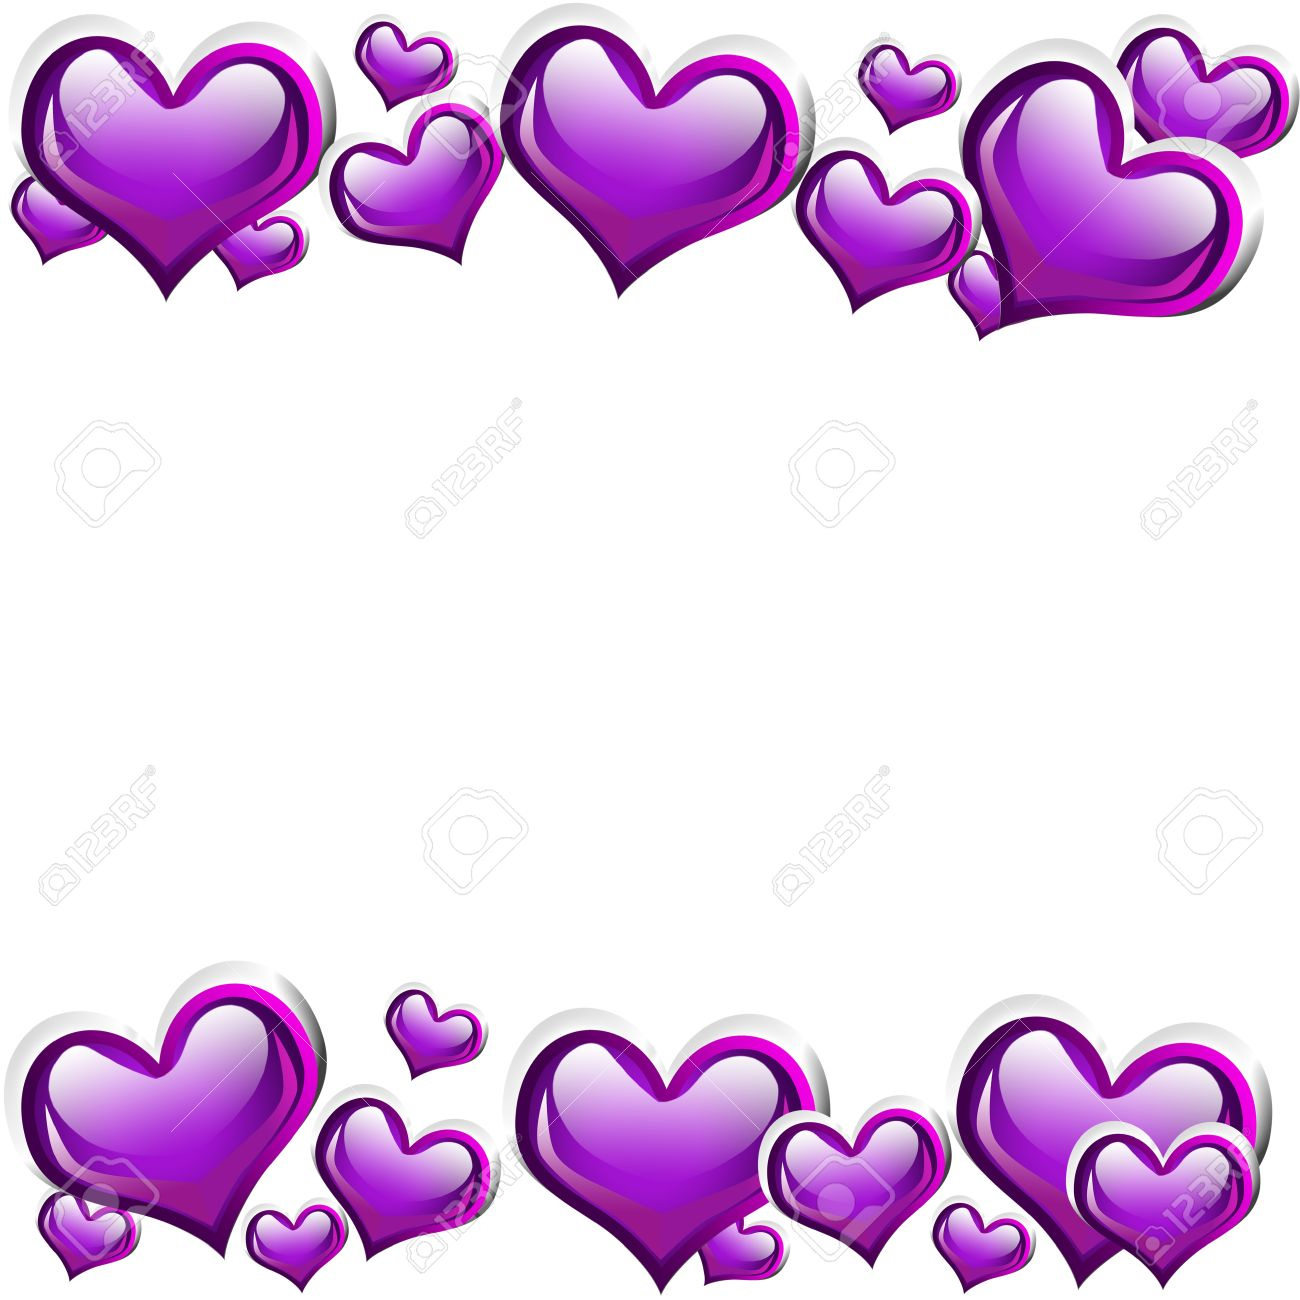 Purple Hearts Clipart | Free download on ClipArtMag